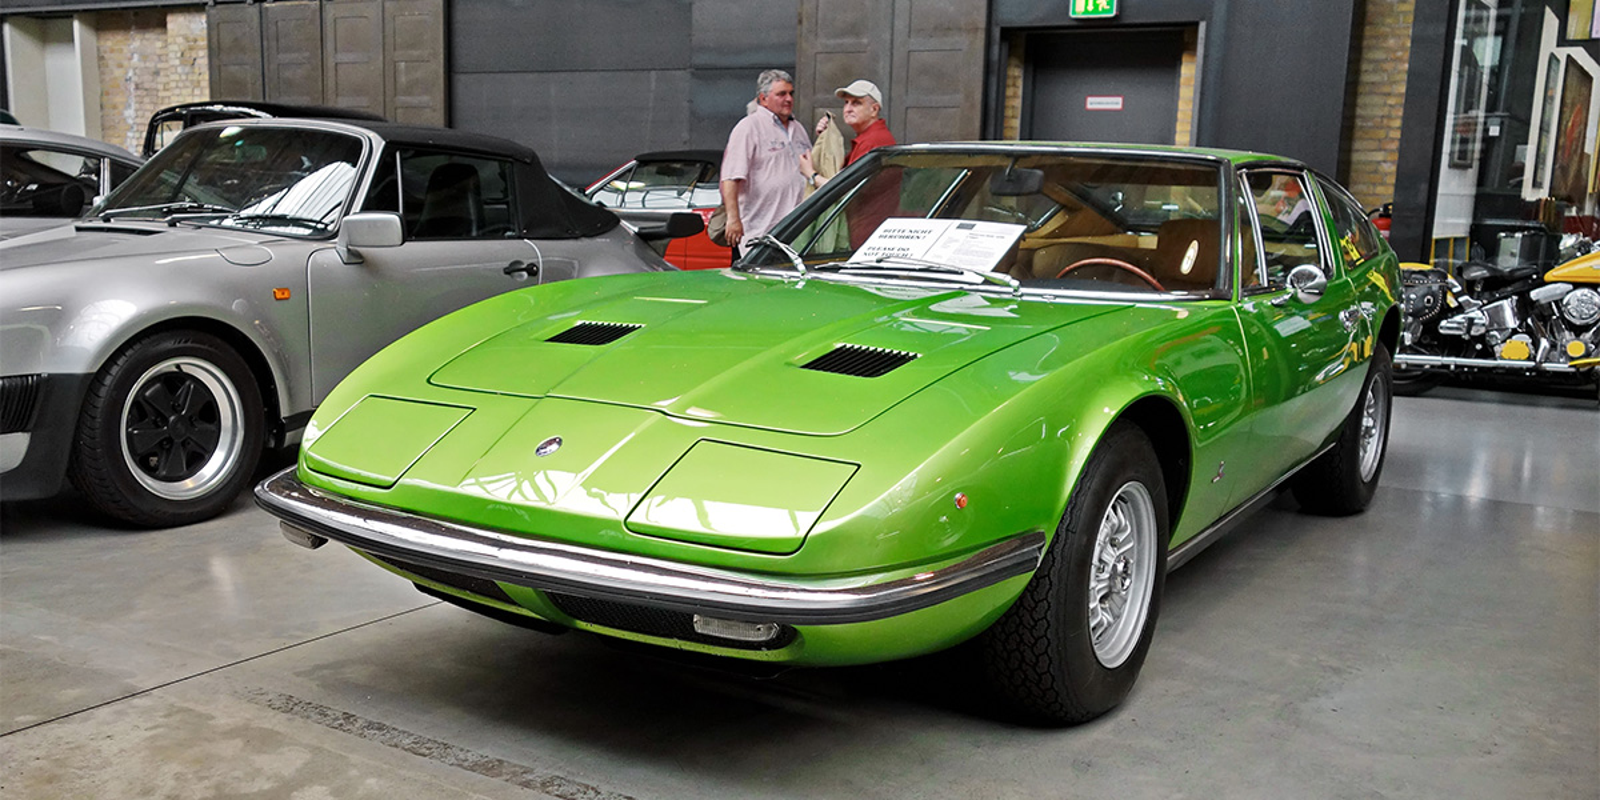 Illustration for article titled Maserati Indy – a Lousy Compromise or a GT of Your Dreams?em/em